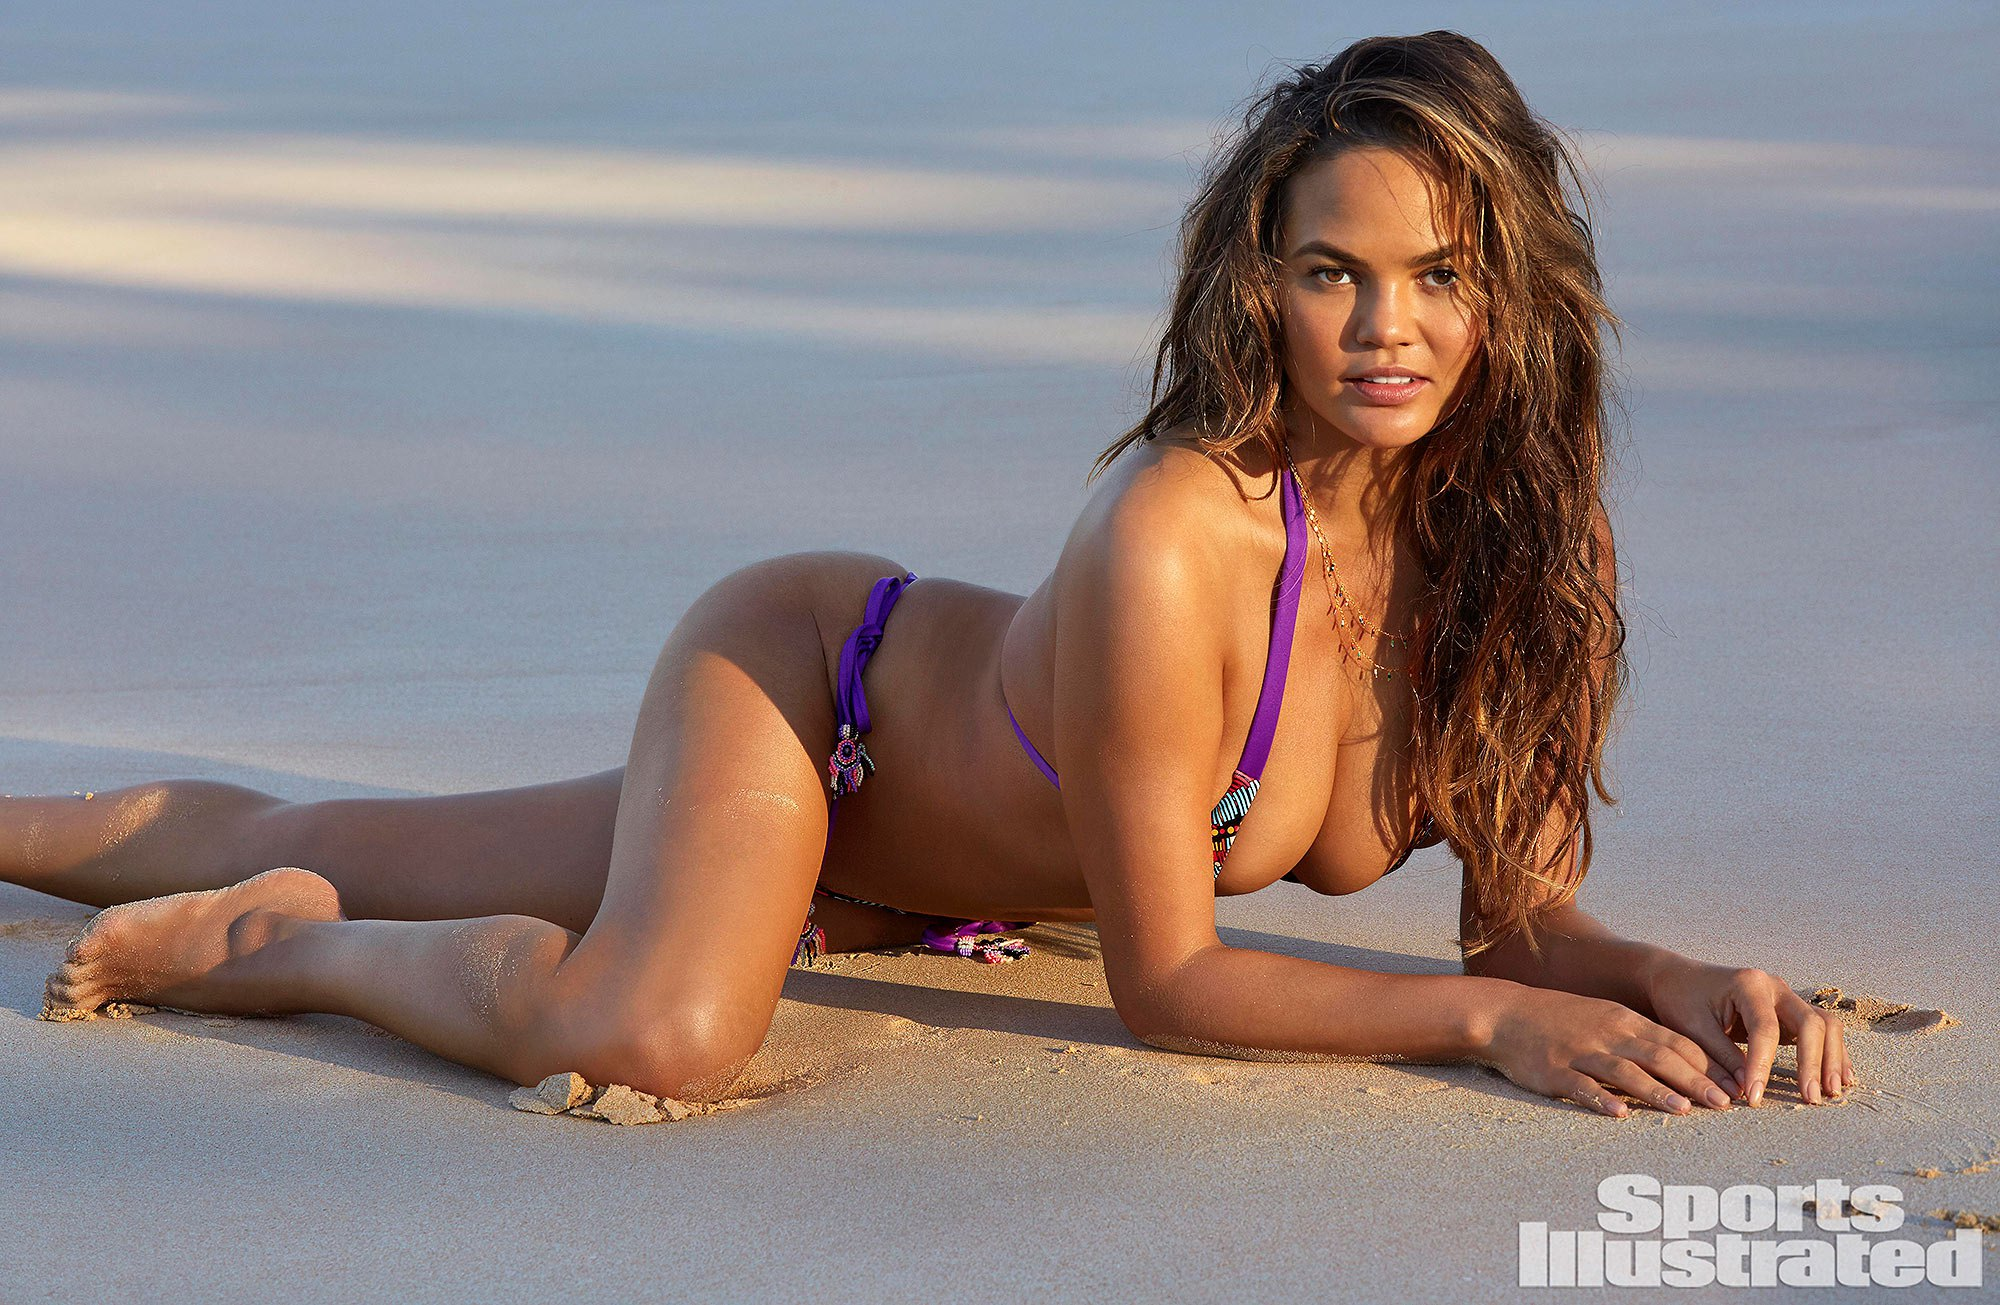 chrissy-teigen-sports-illustrated